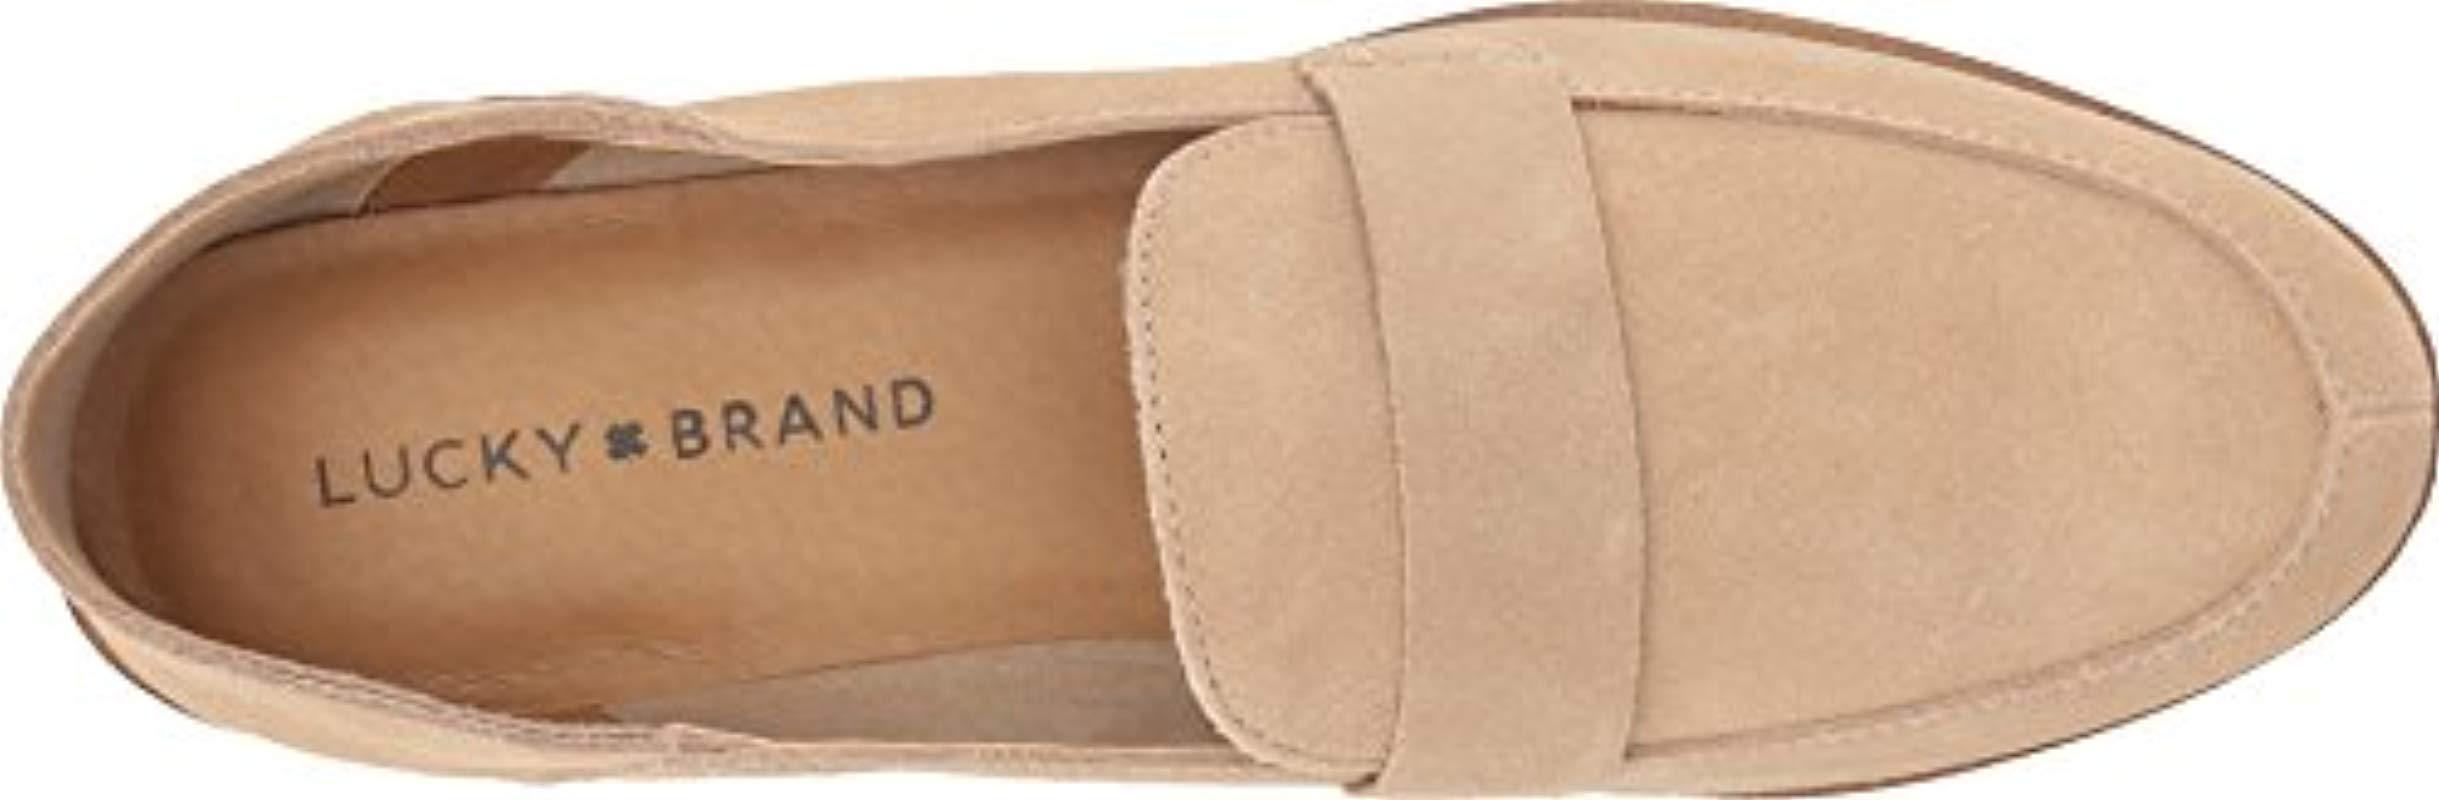 0827eb41d03 Lucky Brand - Natural Chennie Loafer - Lyst. View fullscreen